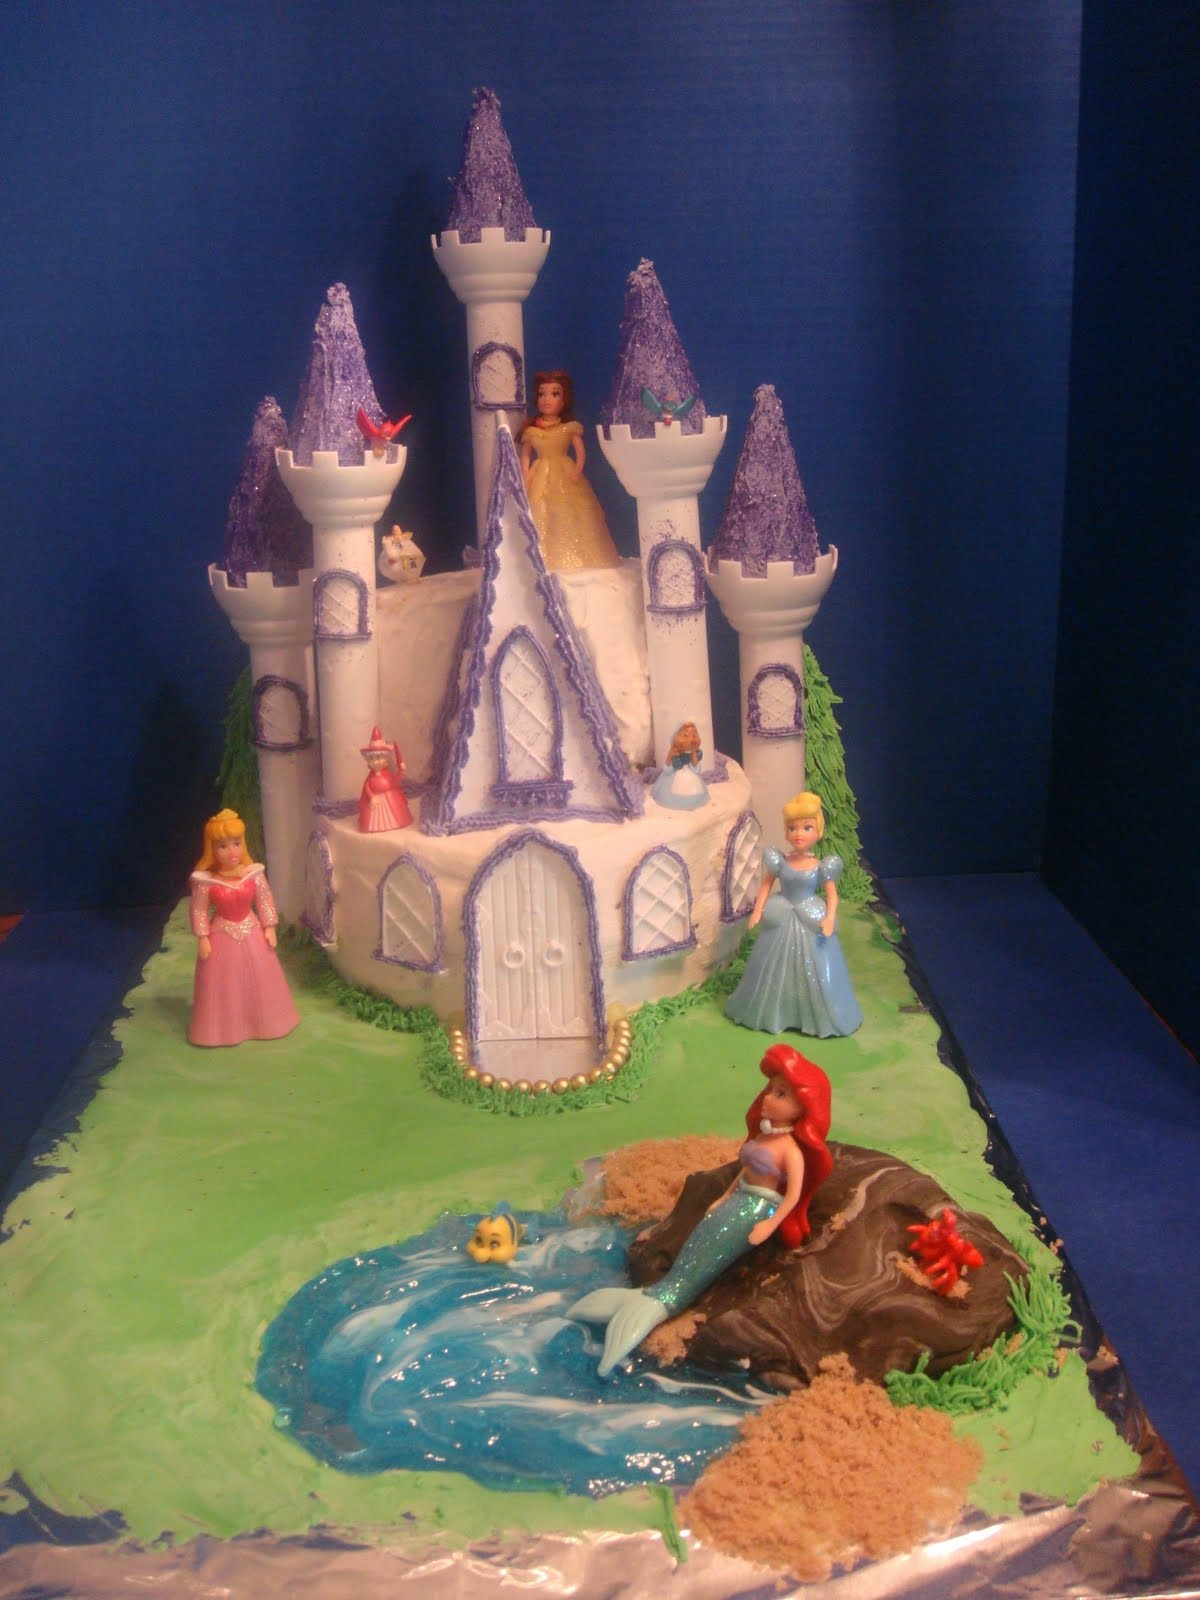 Disney Cake Designs Princesses : Cakes By LAM Designs: Disney Princess Castle Cake